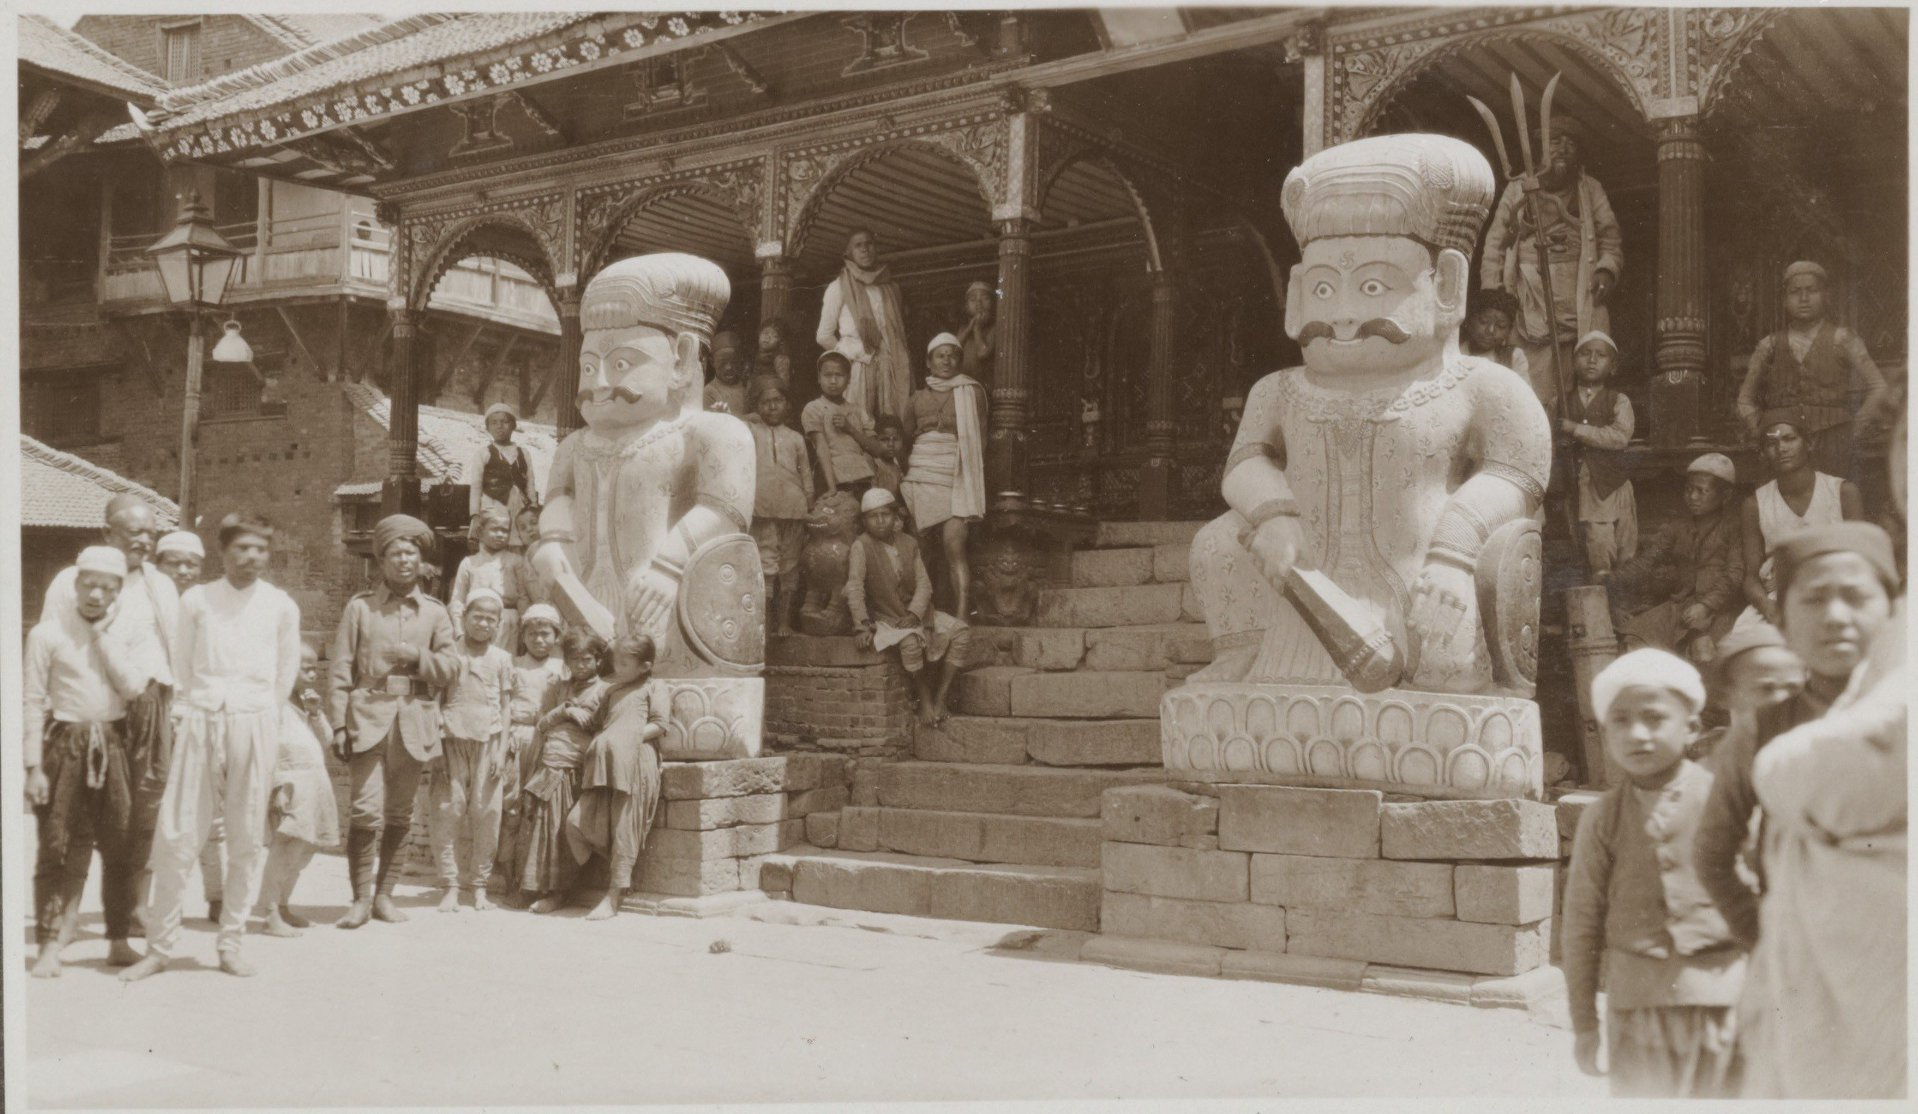 Two Kutuwo's of Dattatreya Temple 1932-34 image